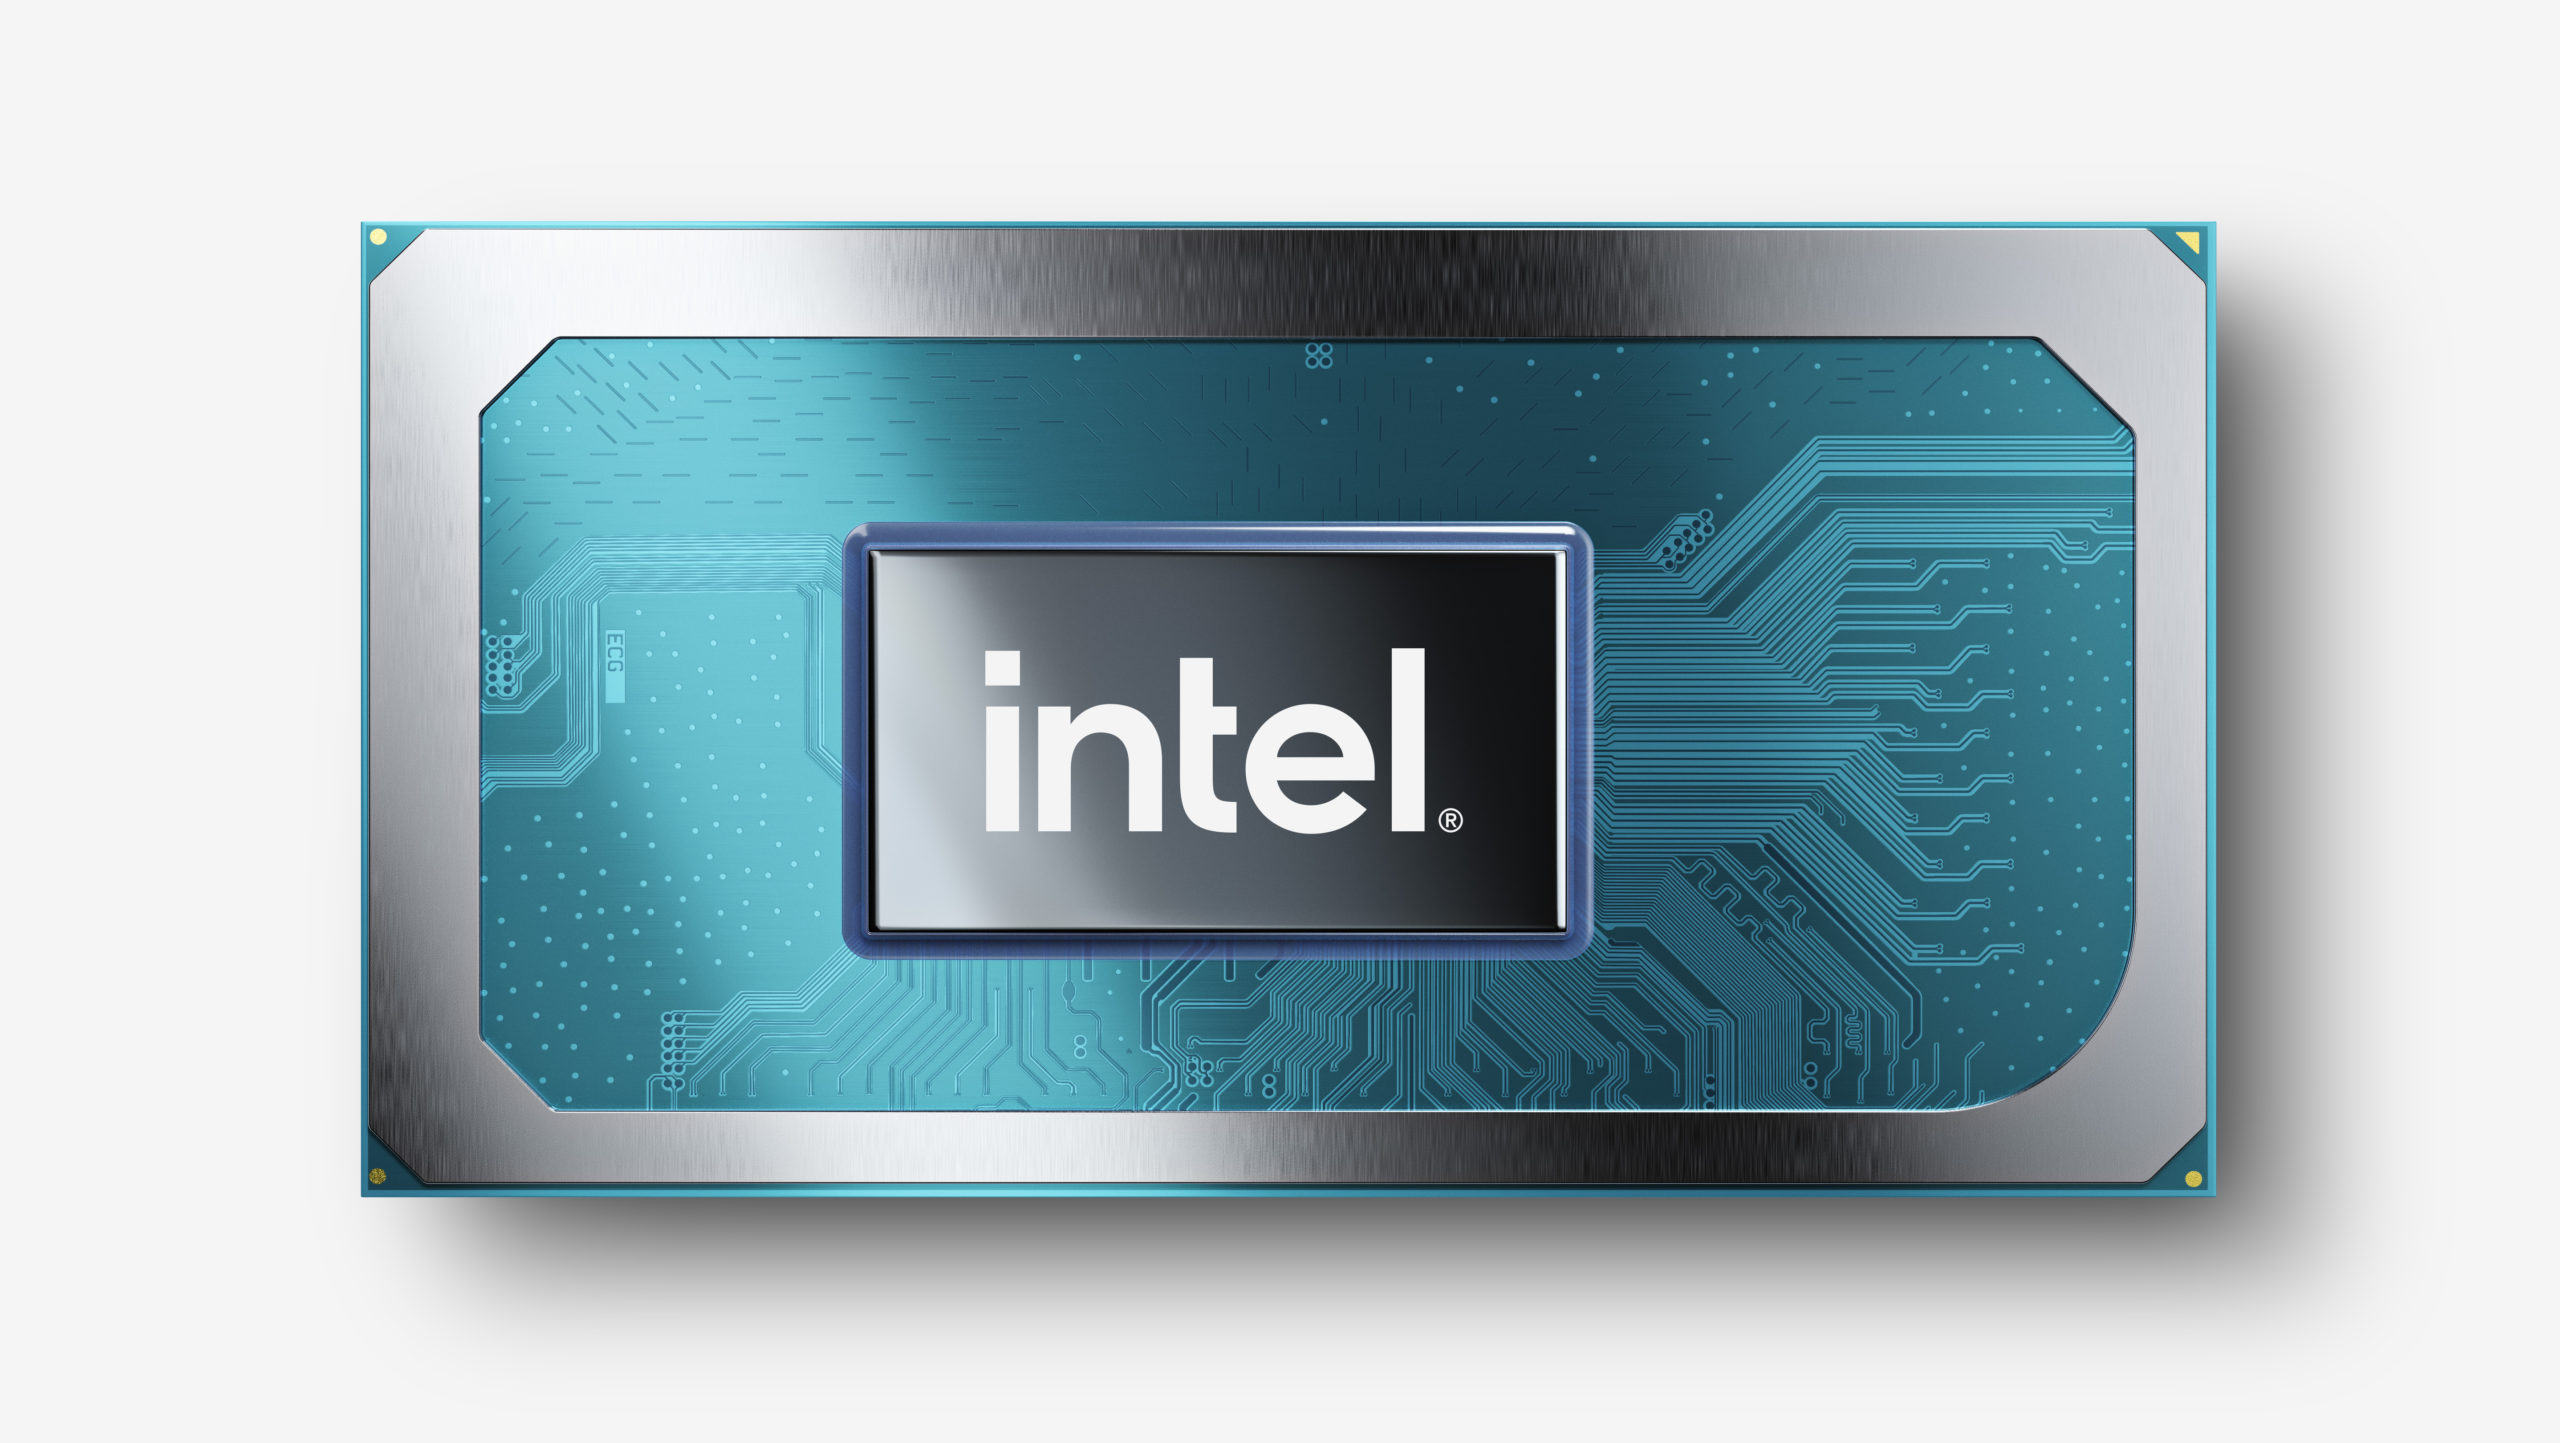 Intel and NVIDIA release new silicon for high-performance portable computing